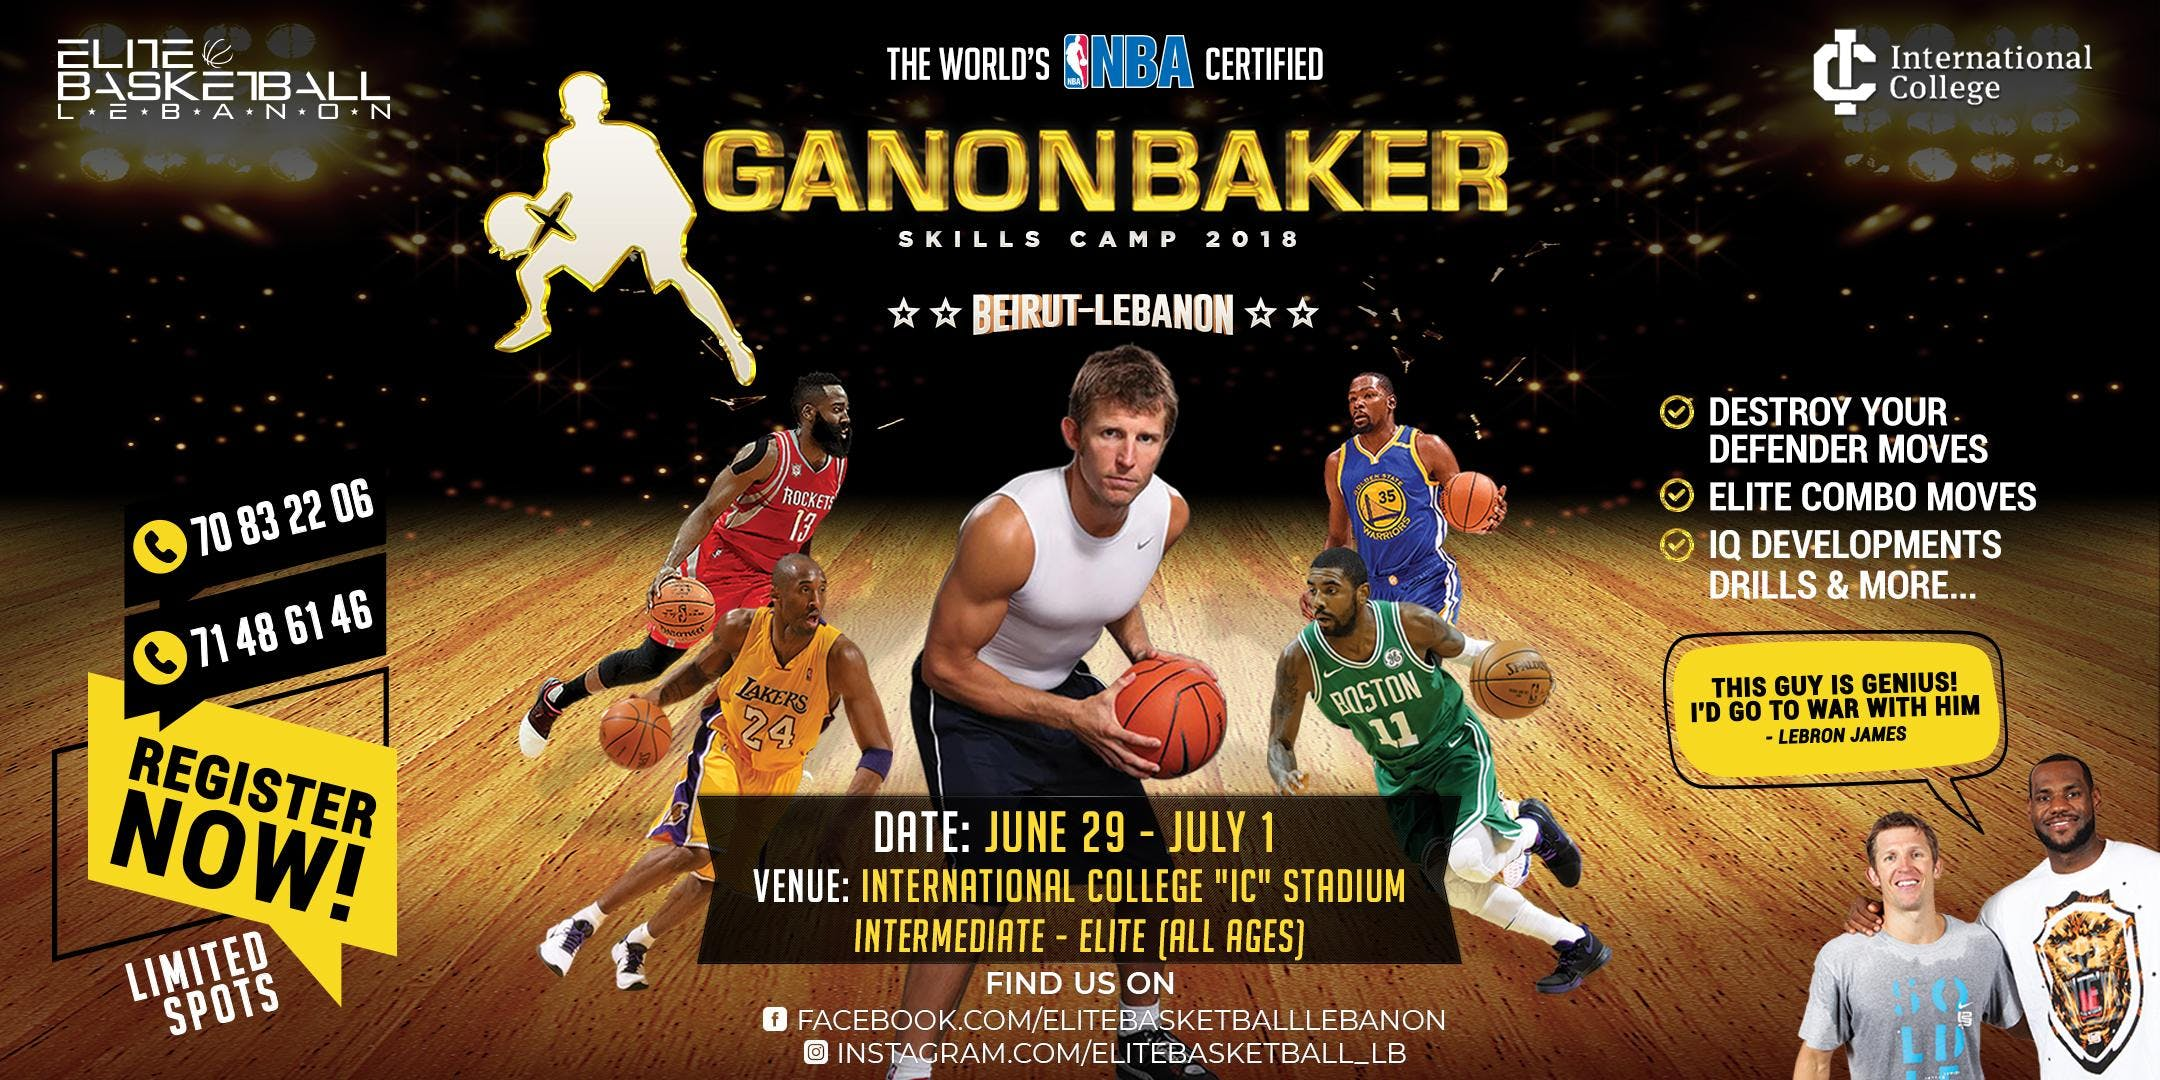 The worlds NBA GANON BAKER Skills Camp 2018  Beirut - Lebanon